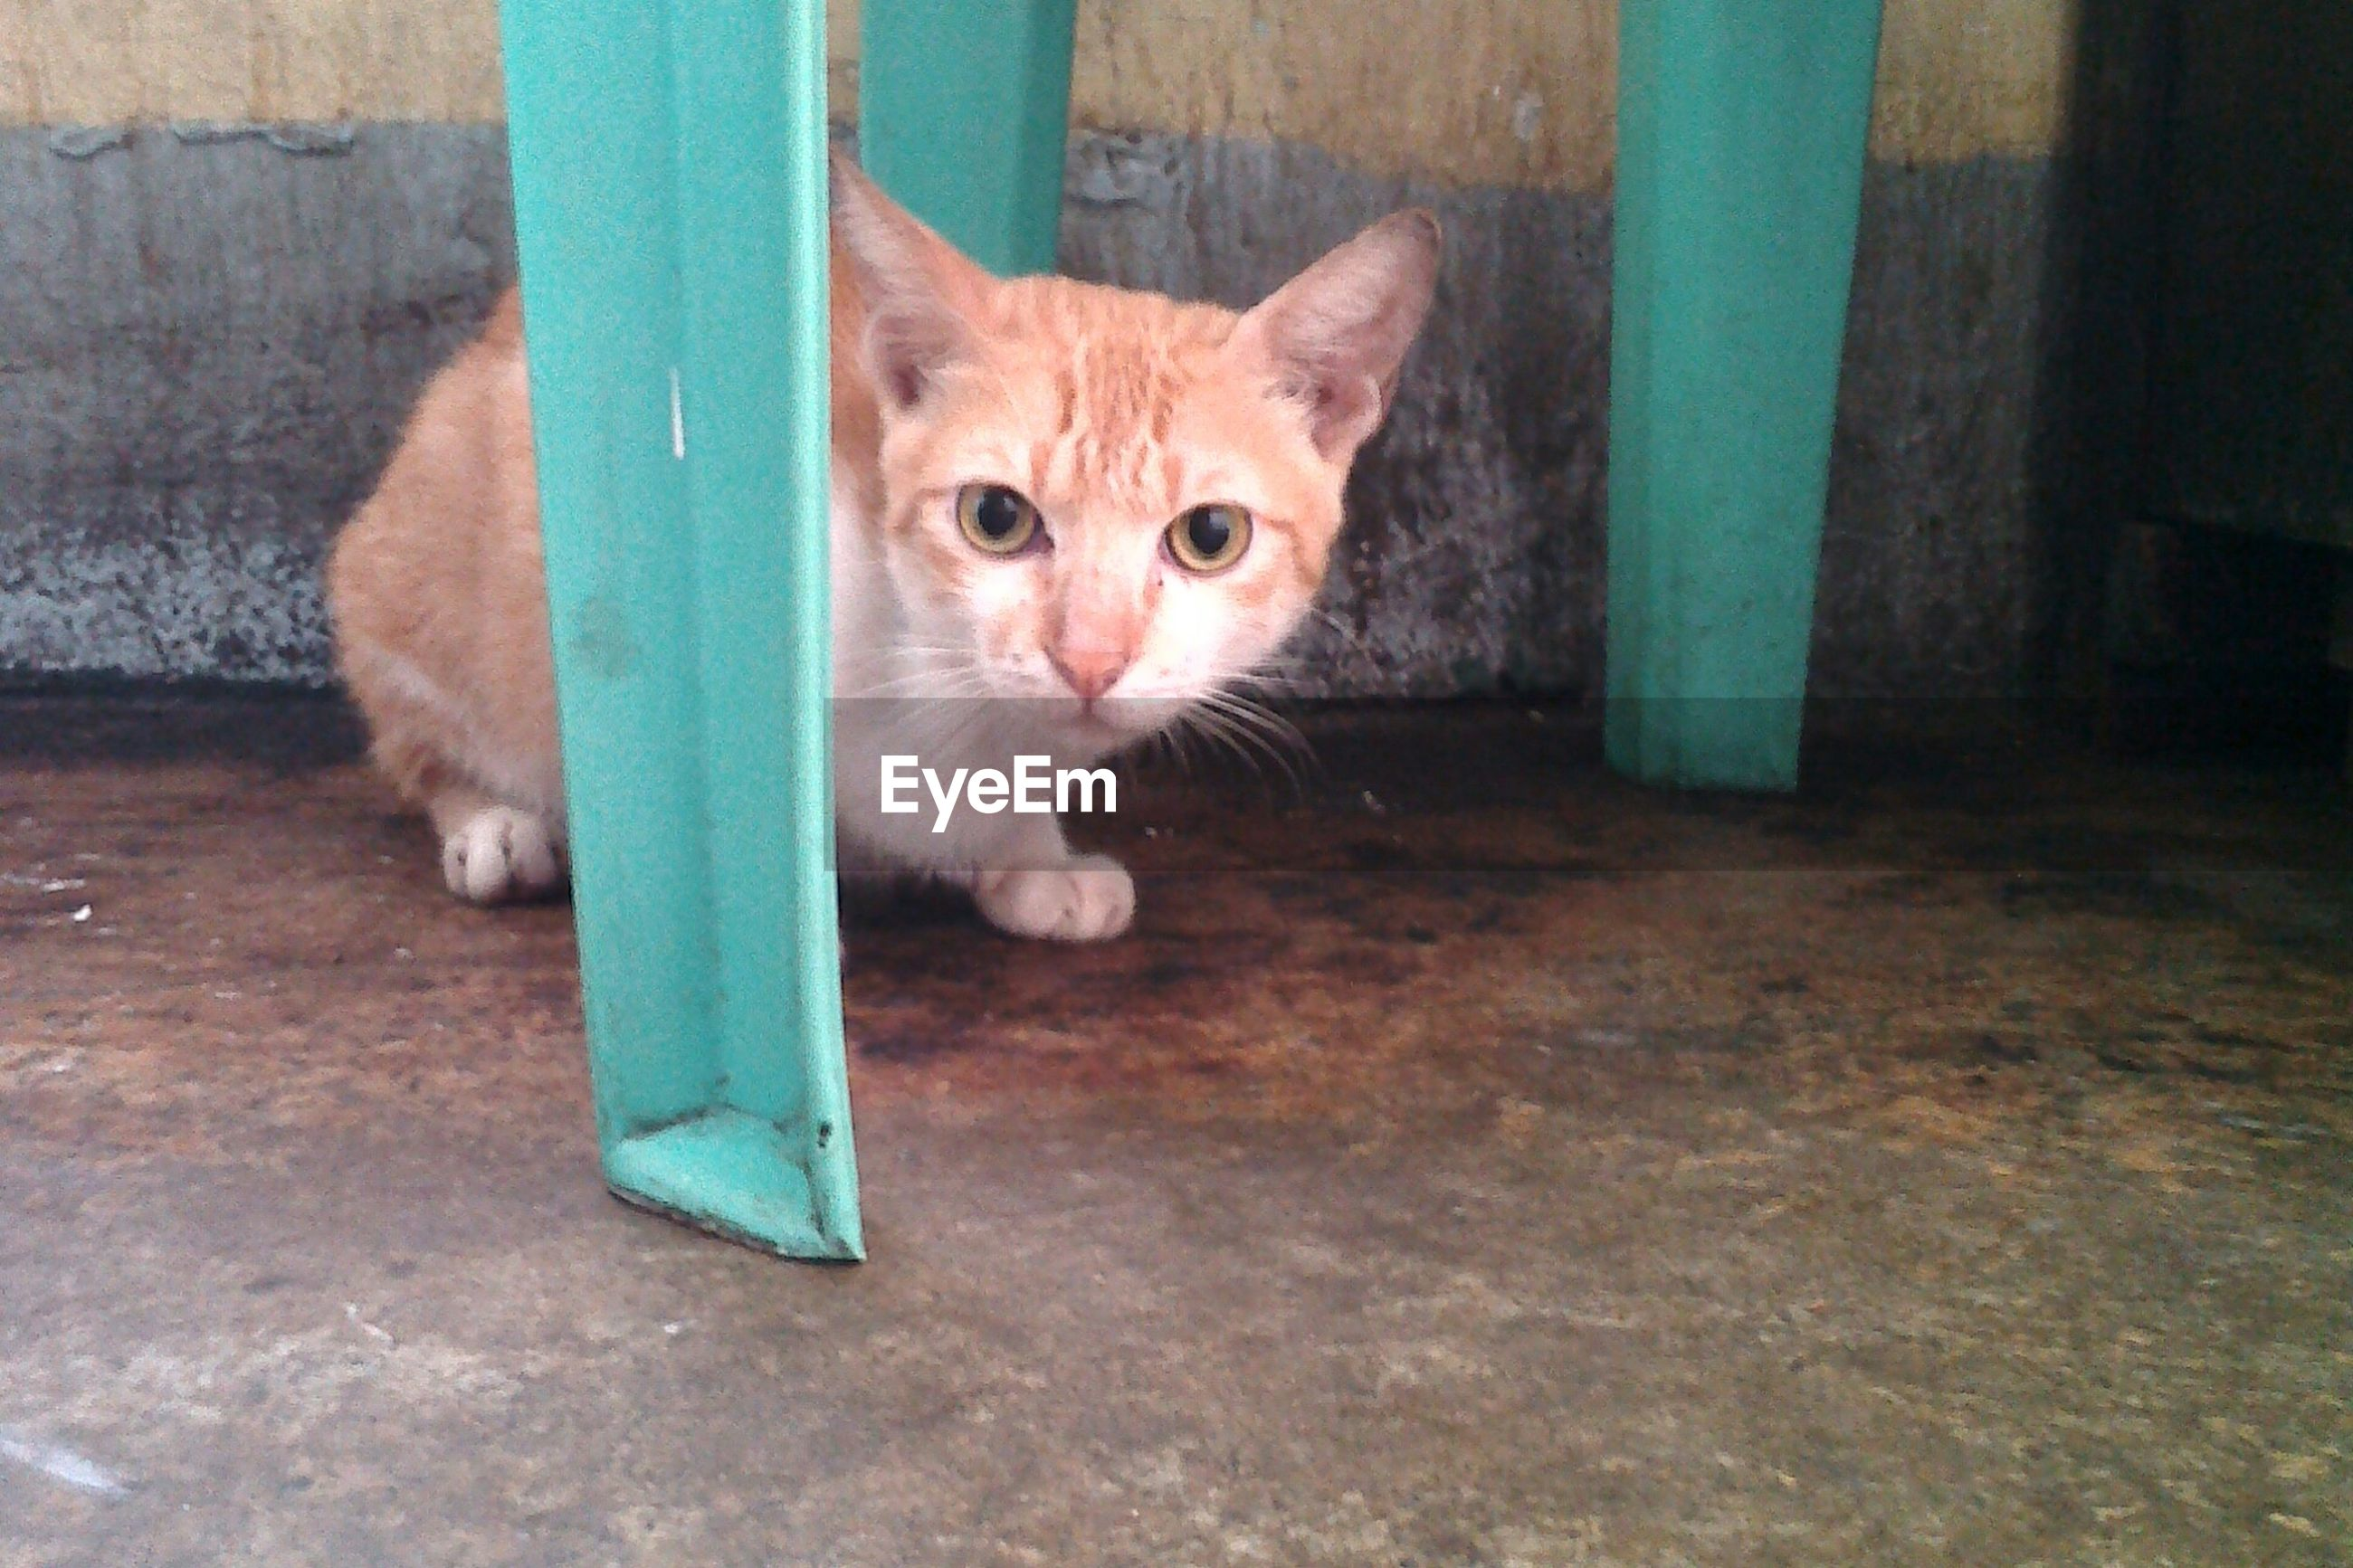 domestic animals, pets, animal themes, one animal, domestic cat, mammal, cat, portrait, looking at camera, feline, whisker, indoors, staring, sitting, alertness, no people, animal head, cute, animal eye, zoology